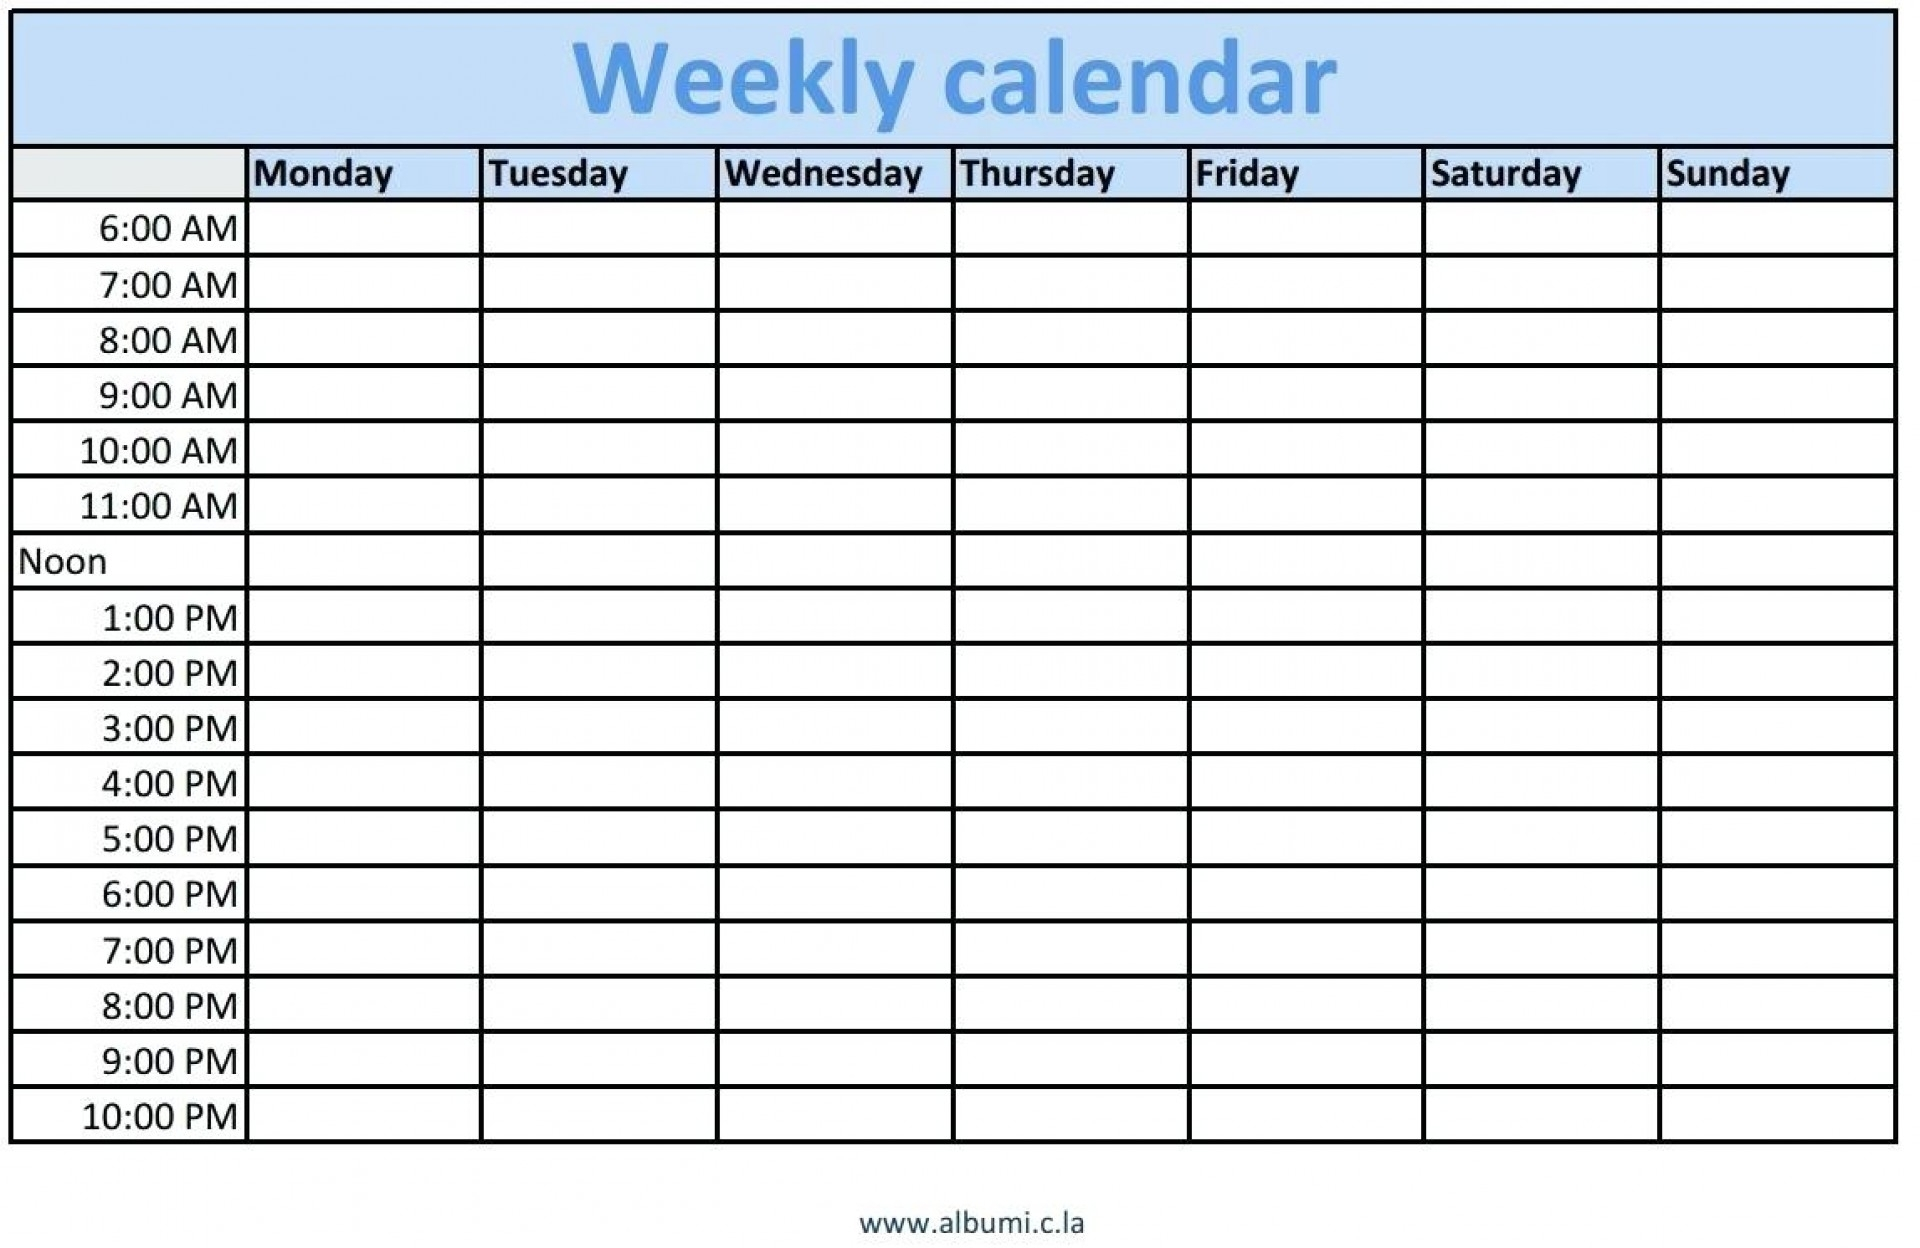 Schedule Template Daily Timetable Printable Time Templates Calendar intended for Blank 7-Day Calendar With Time